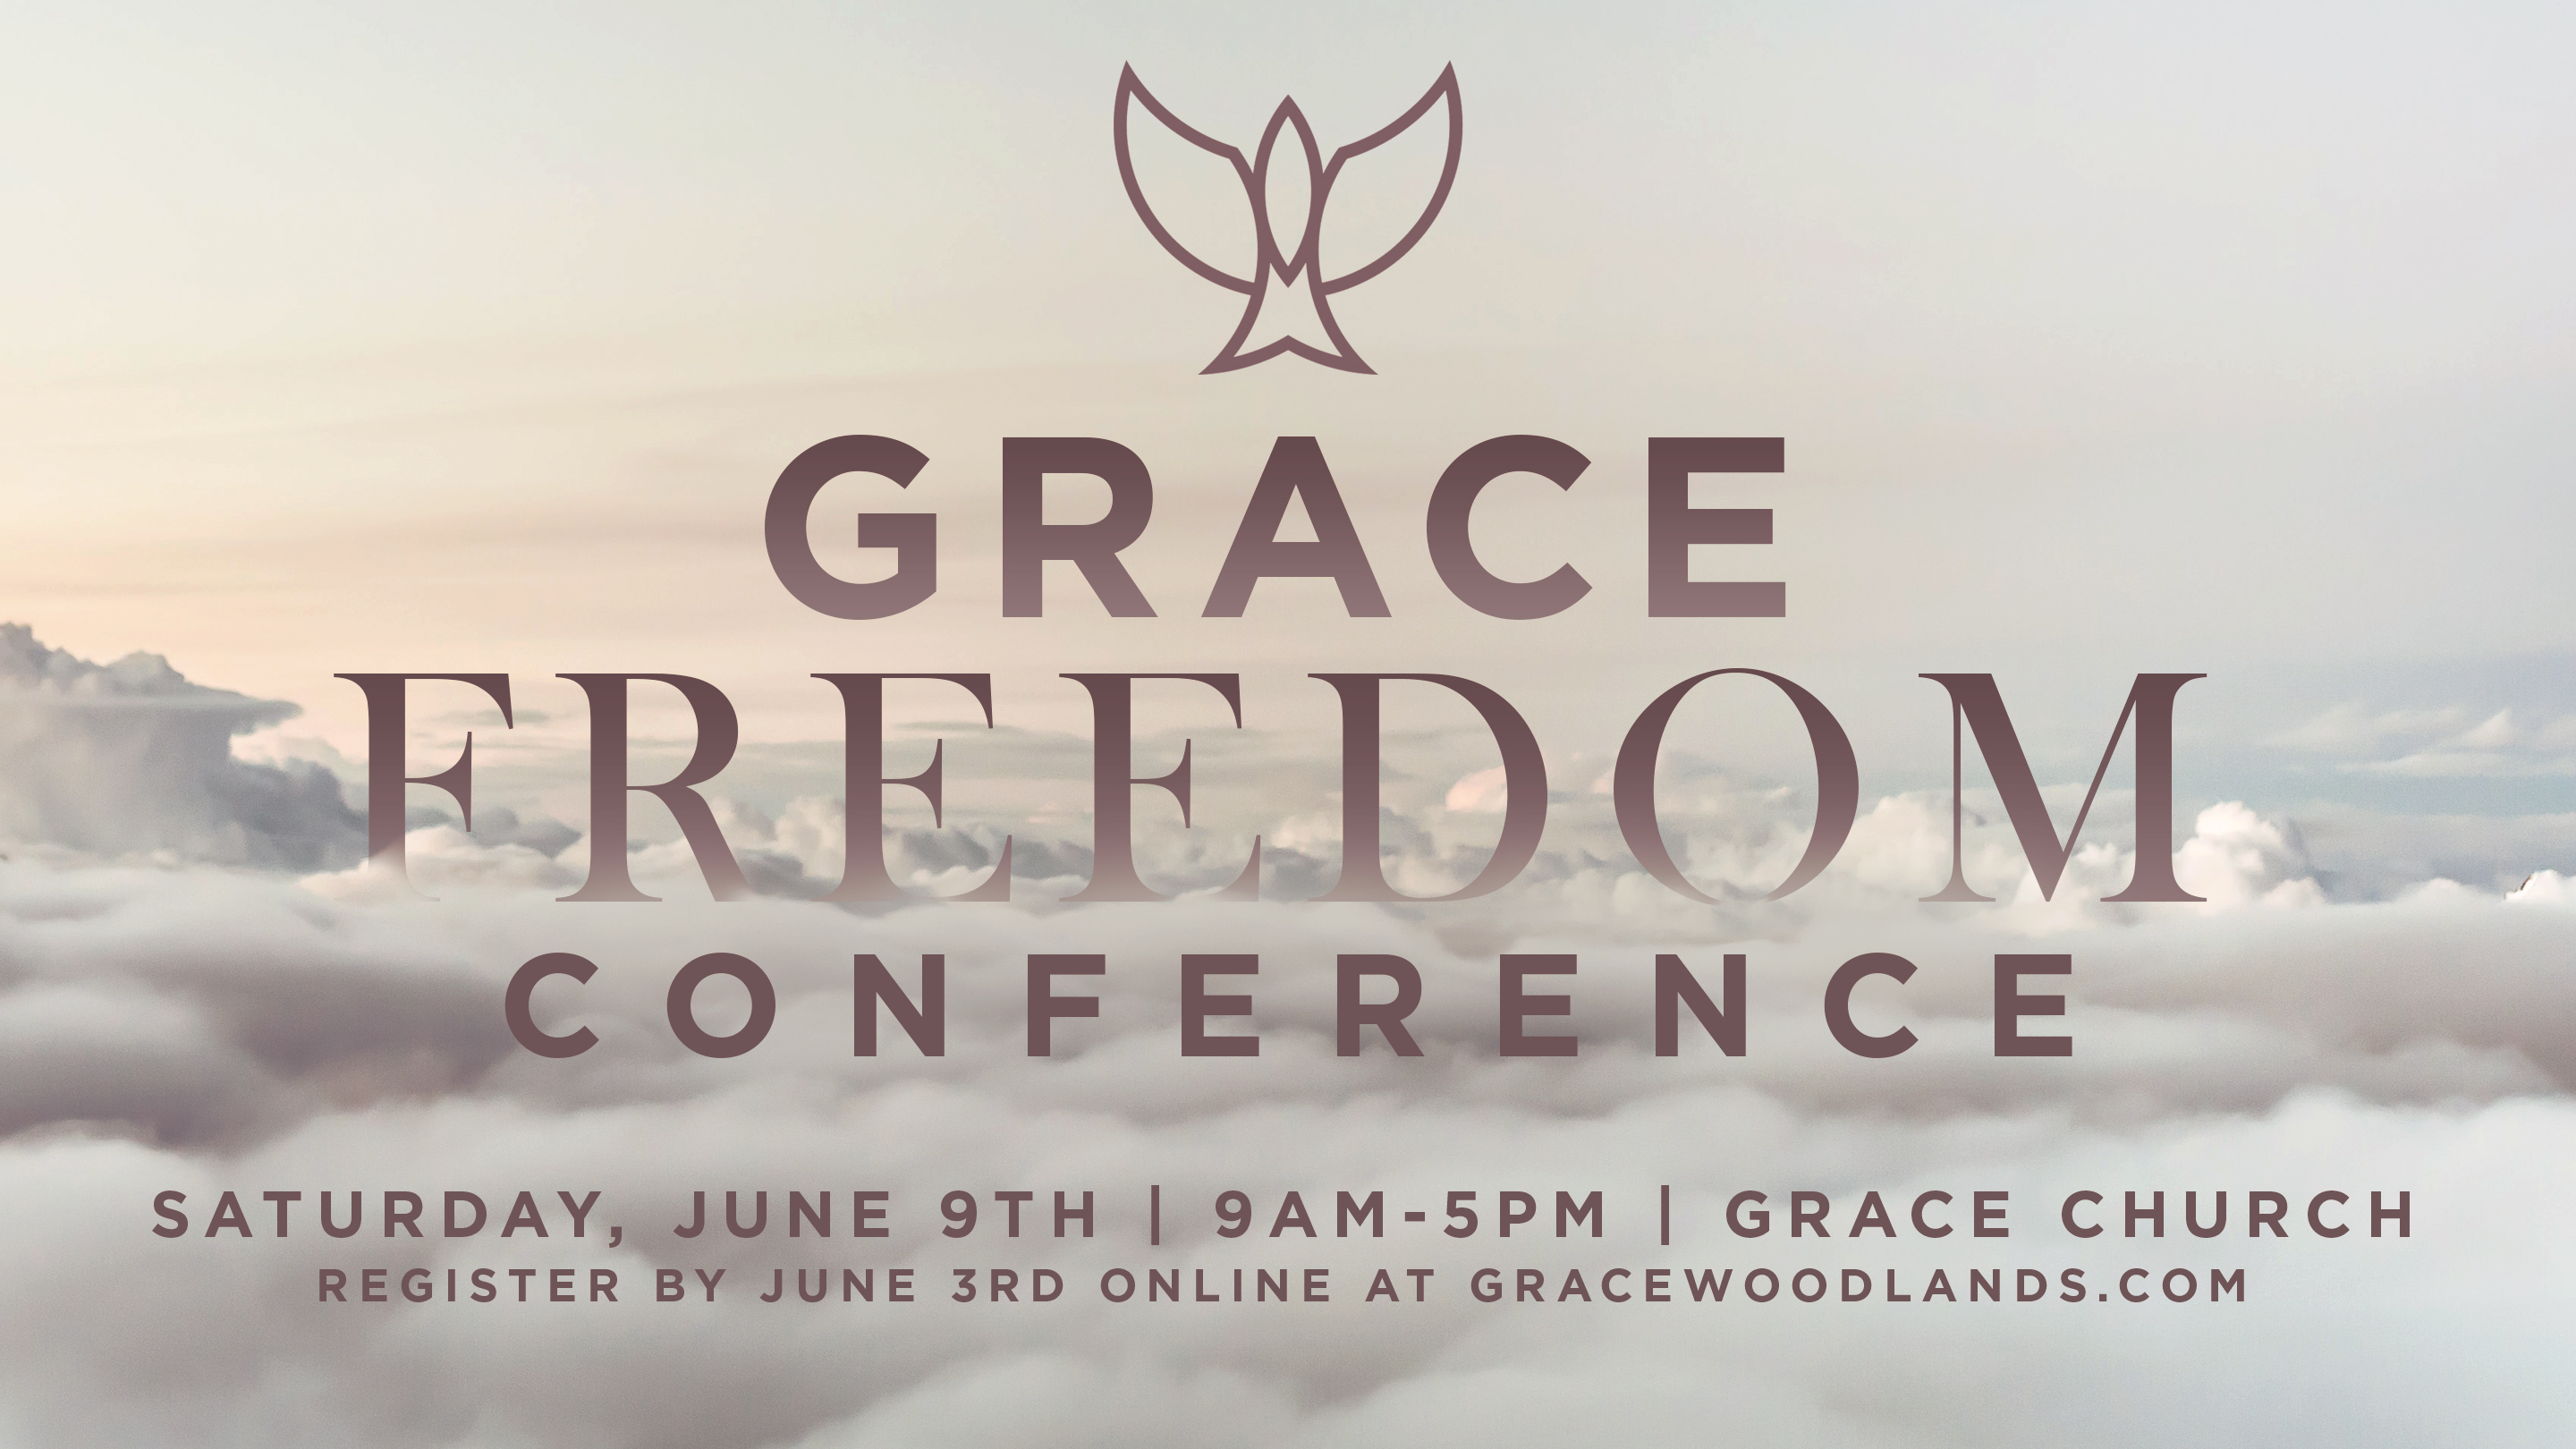 Freedom conference screen